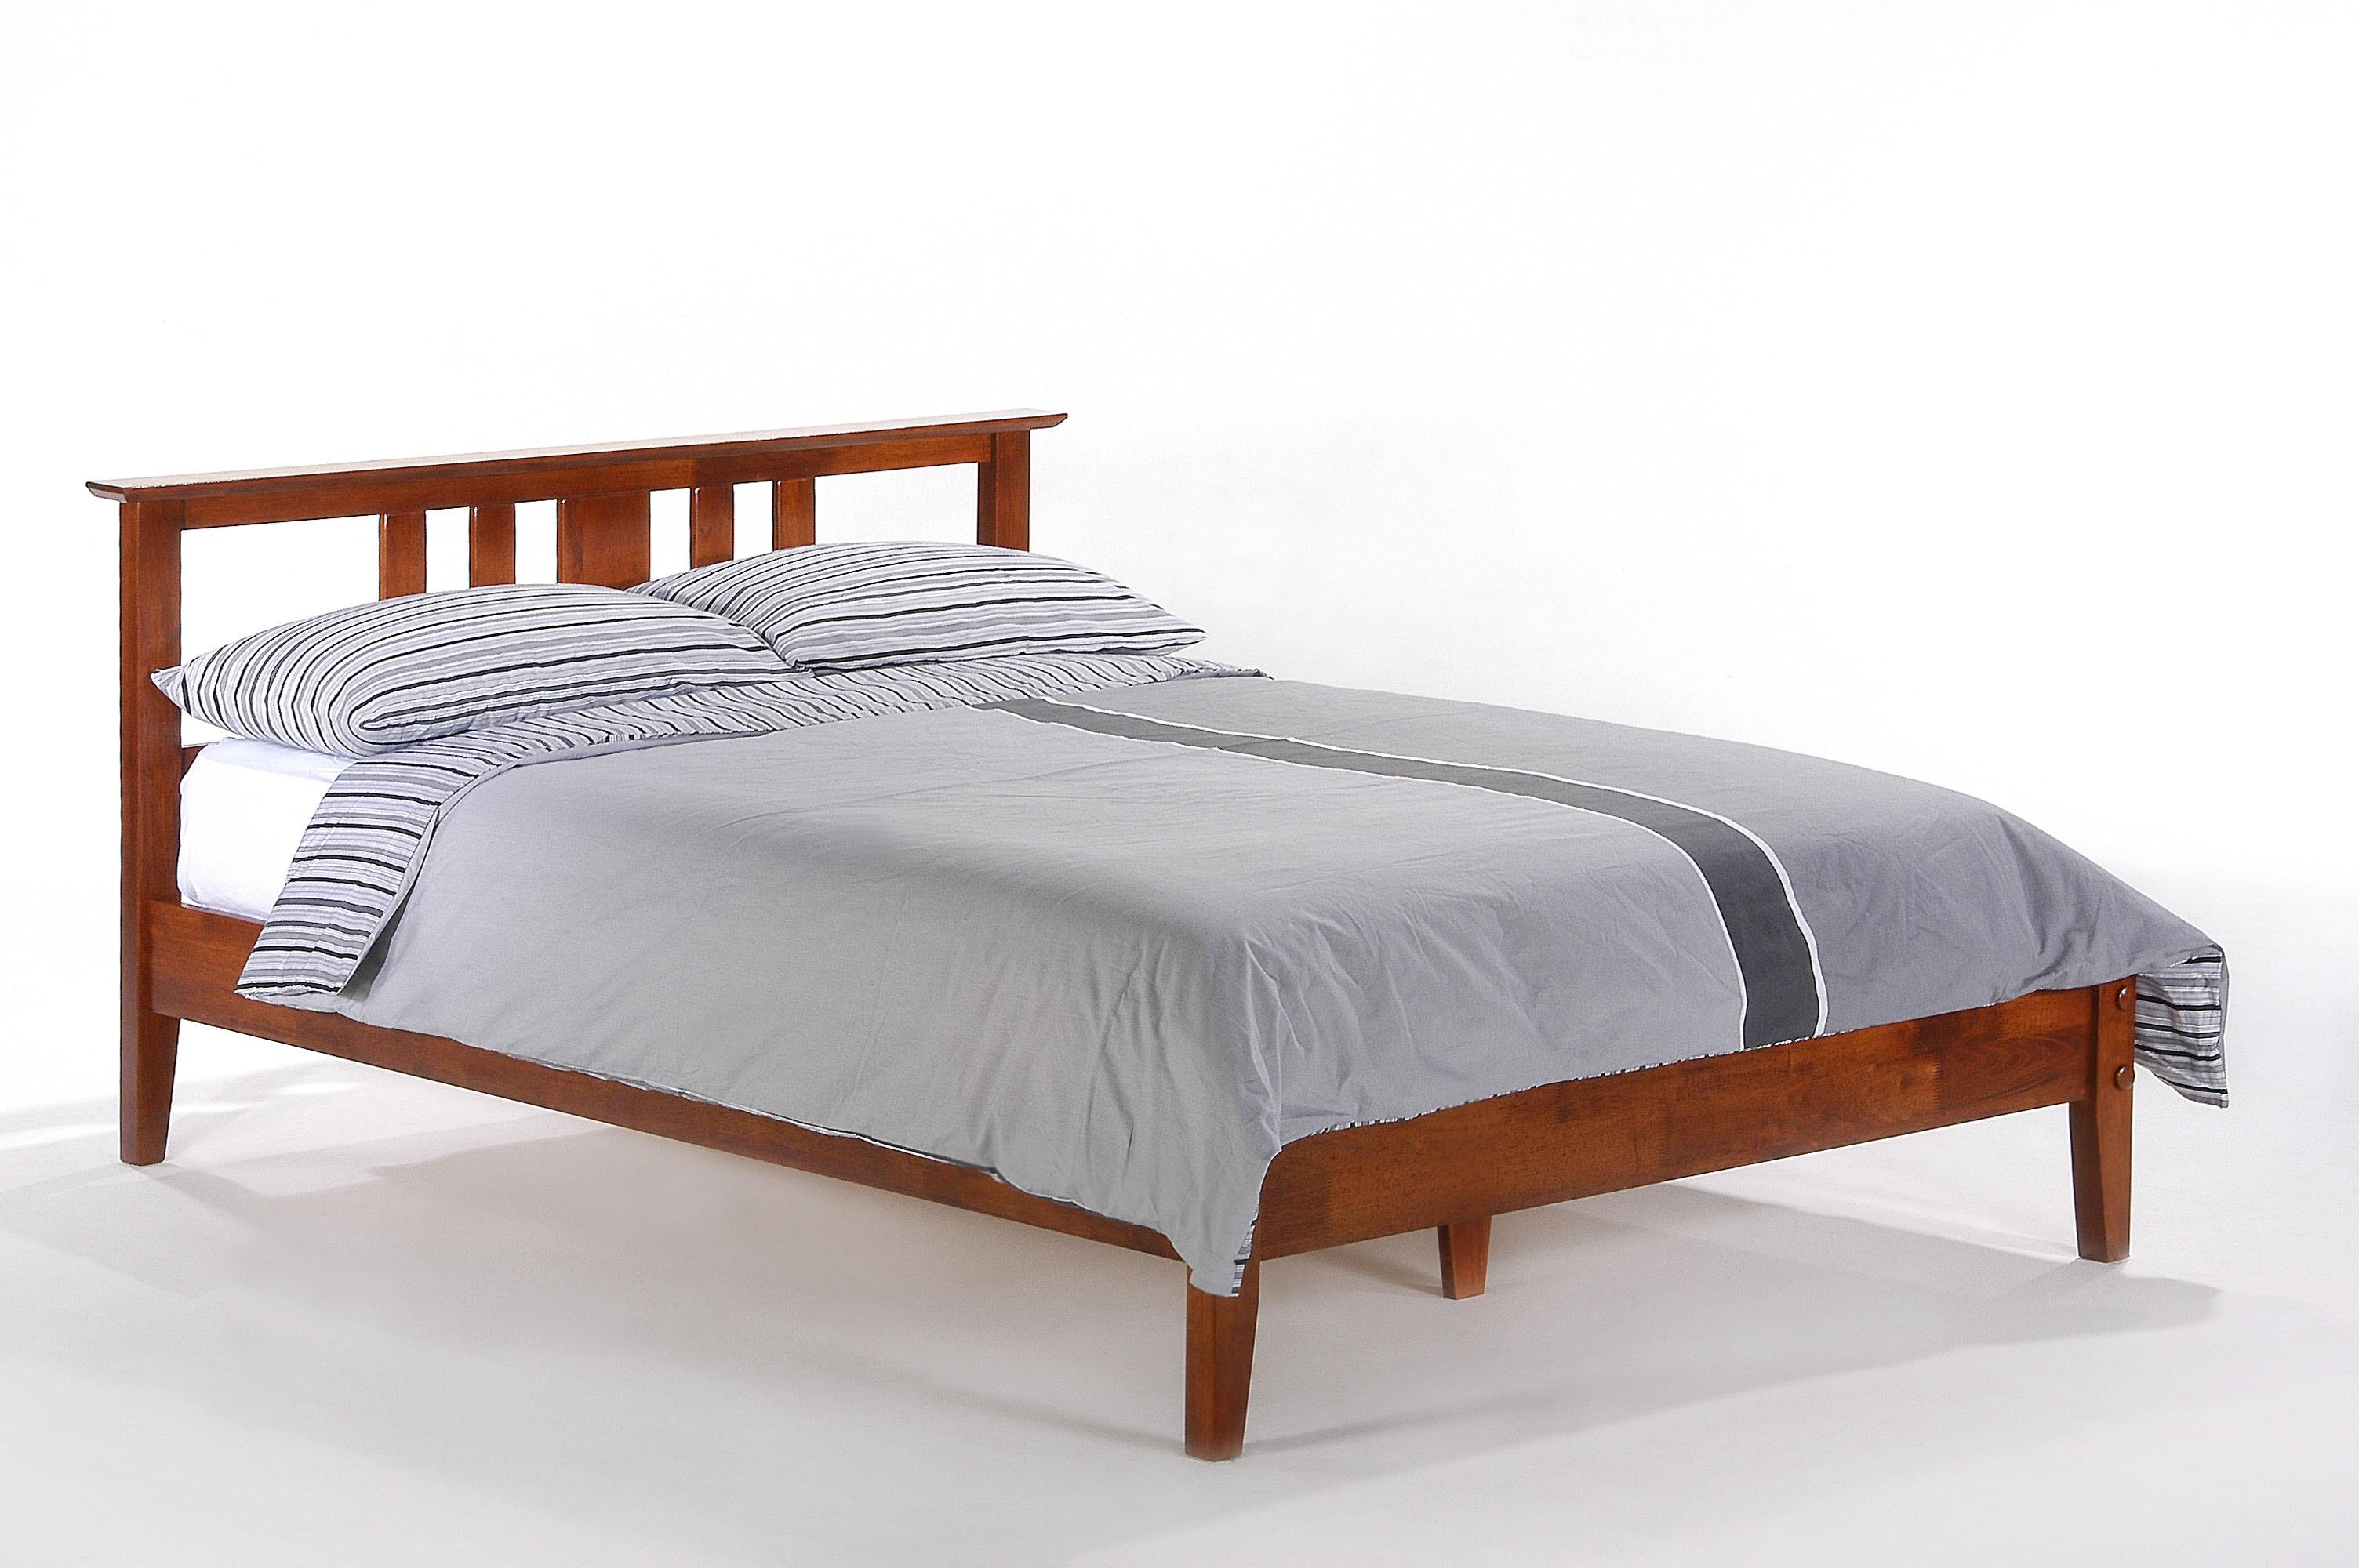 Thyme Twin Bed by Pacific Manufacturing at SlumberWorld